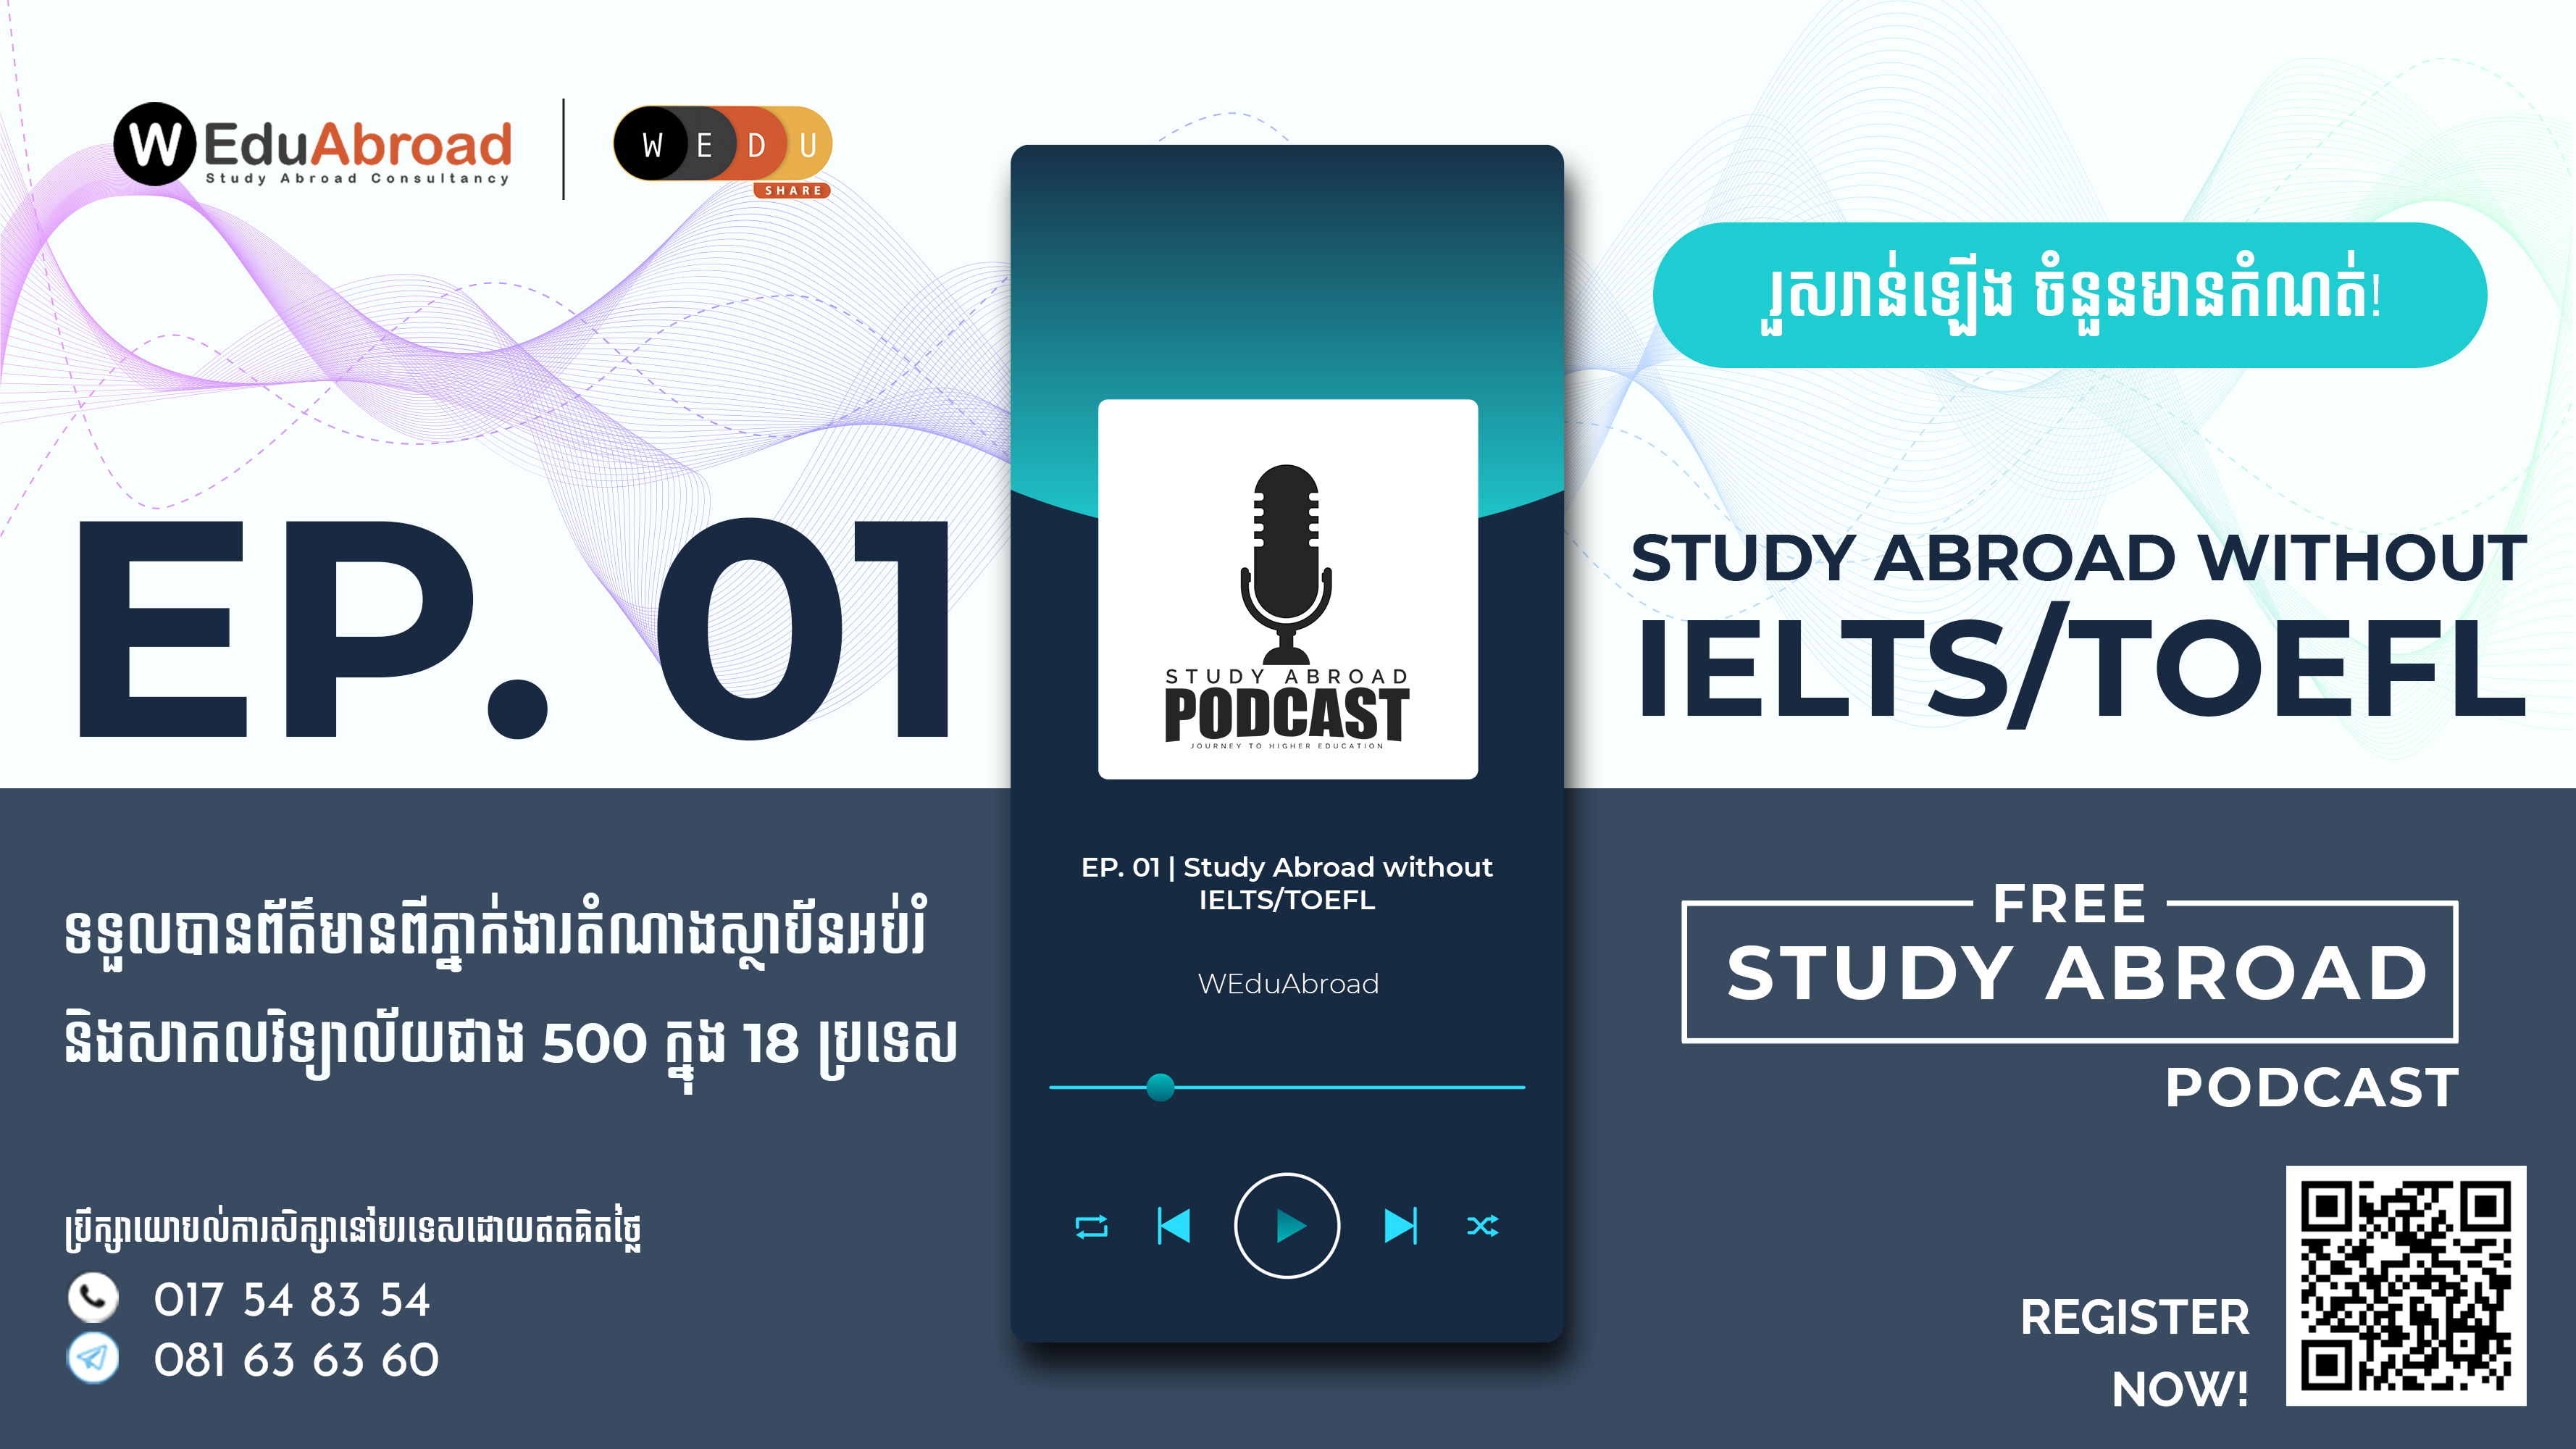 [FREE STUDY ABROAD PODCAST] Episode 01: Study Abroad without IELTS/TOEFL